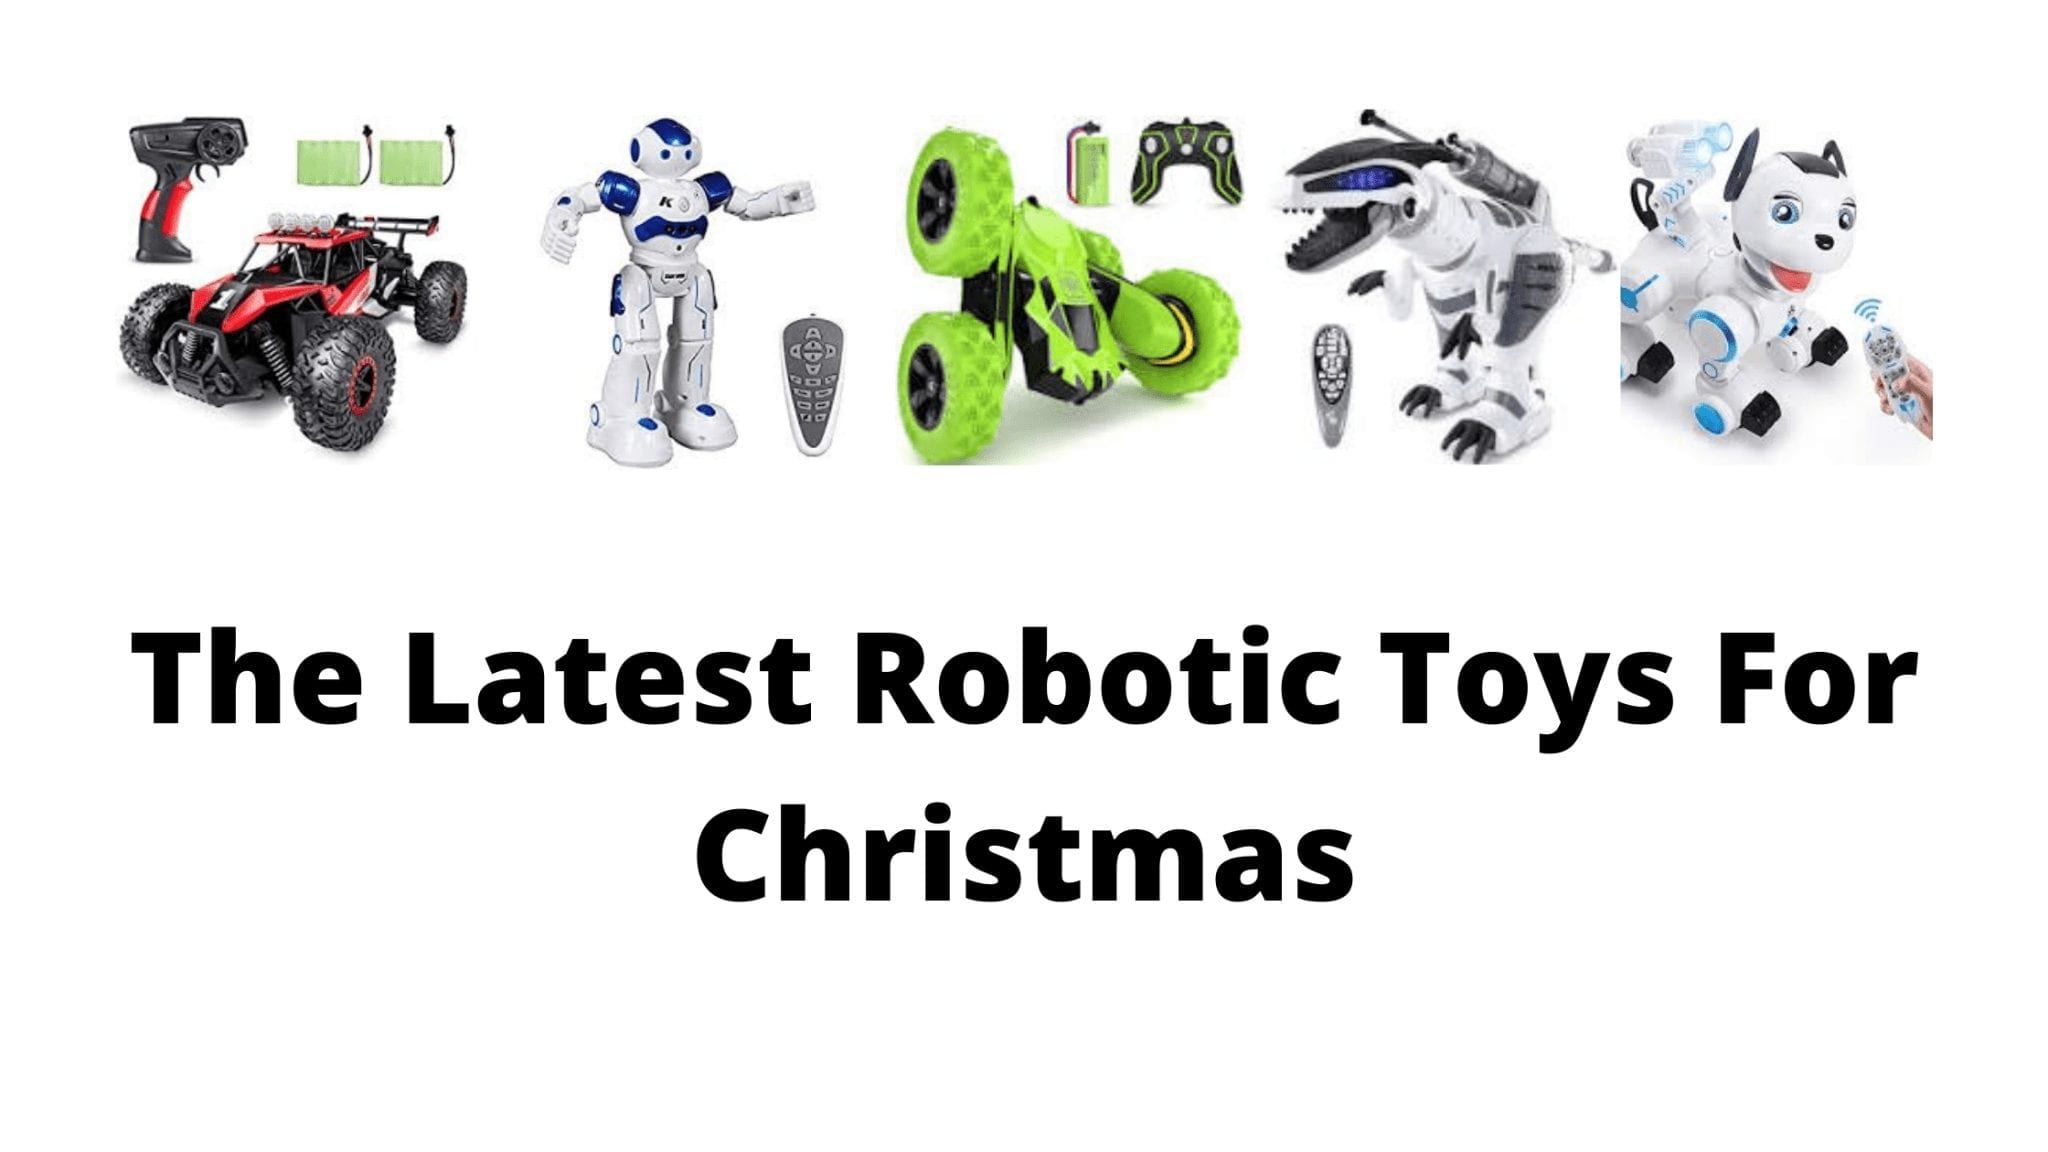 The Latest Robotic Toys For Christmas